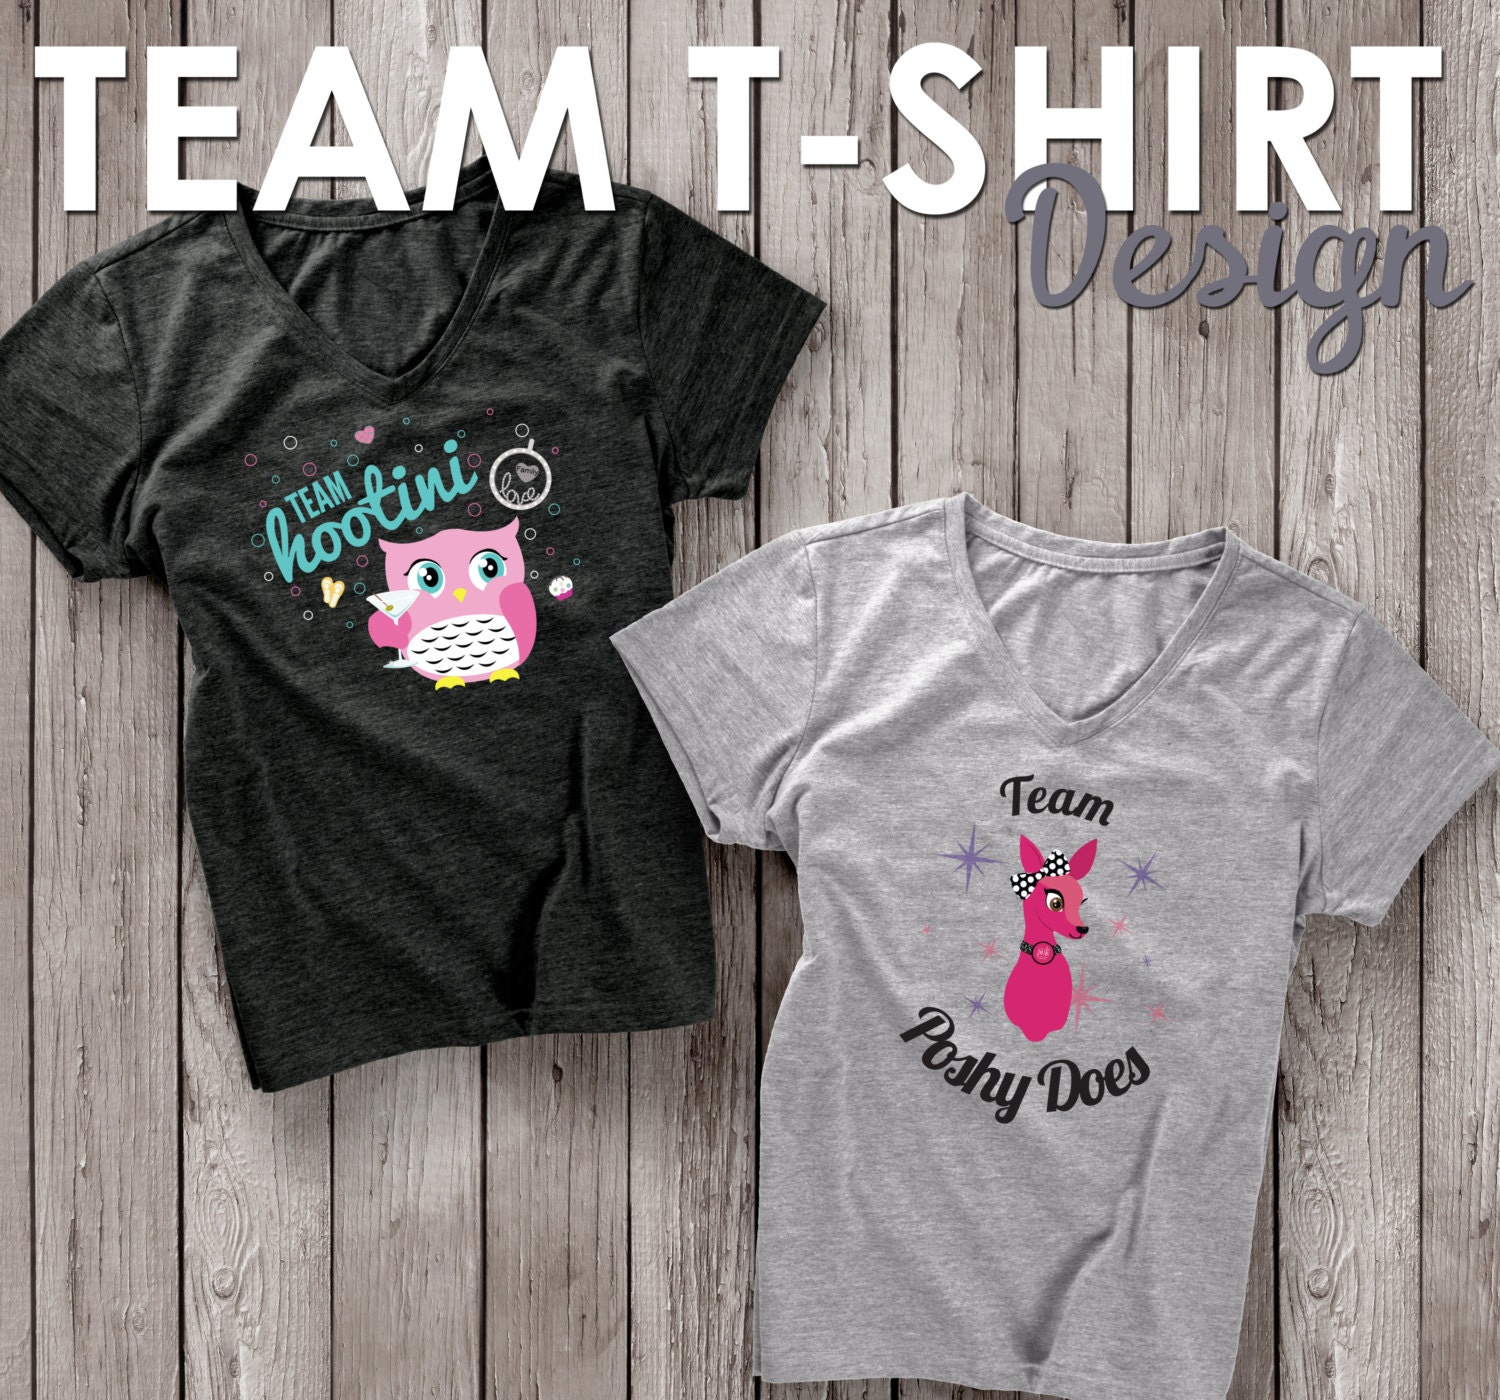 Team t shirt design t shirt designs shirt design by for Team t shirt ideas